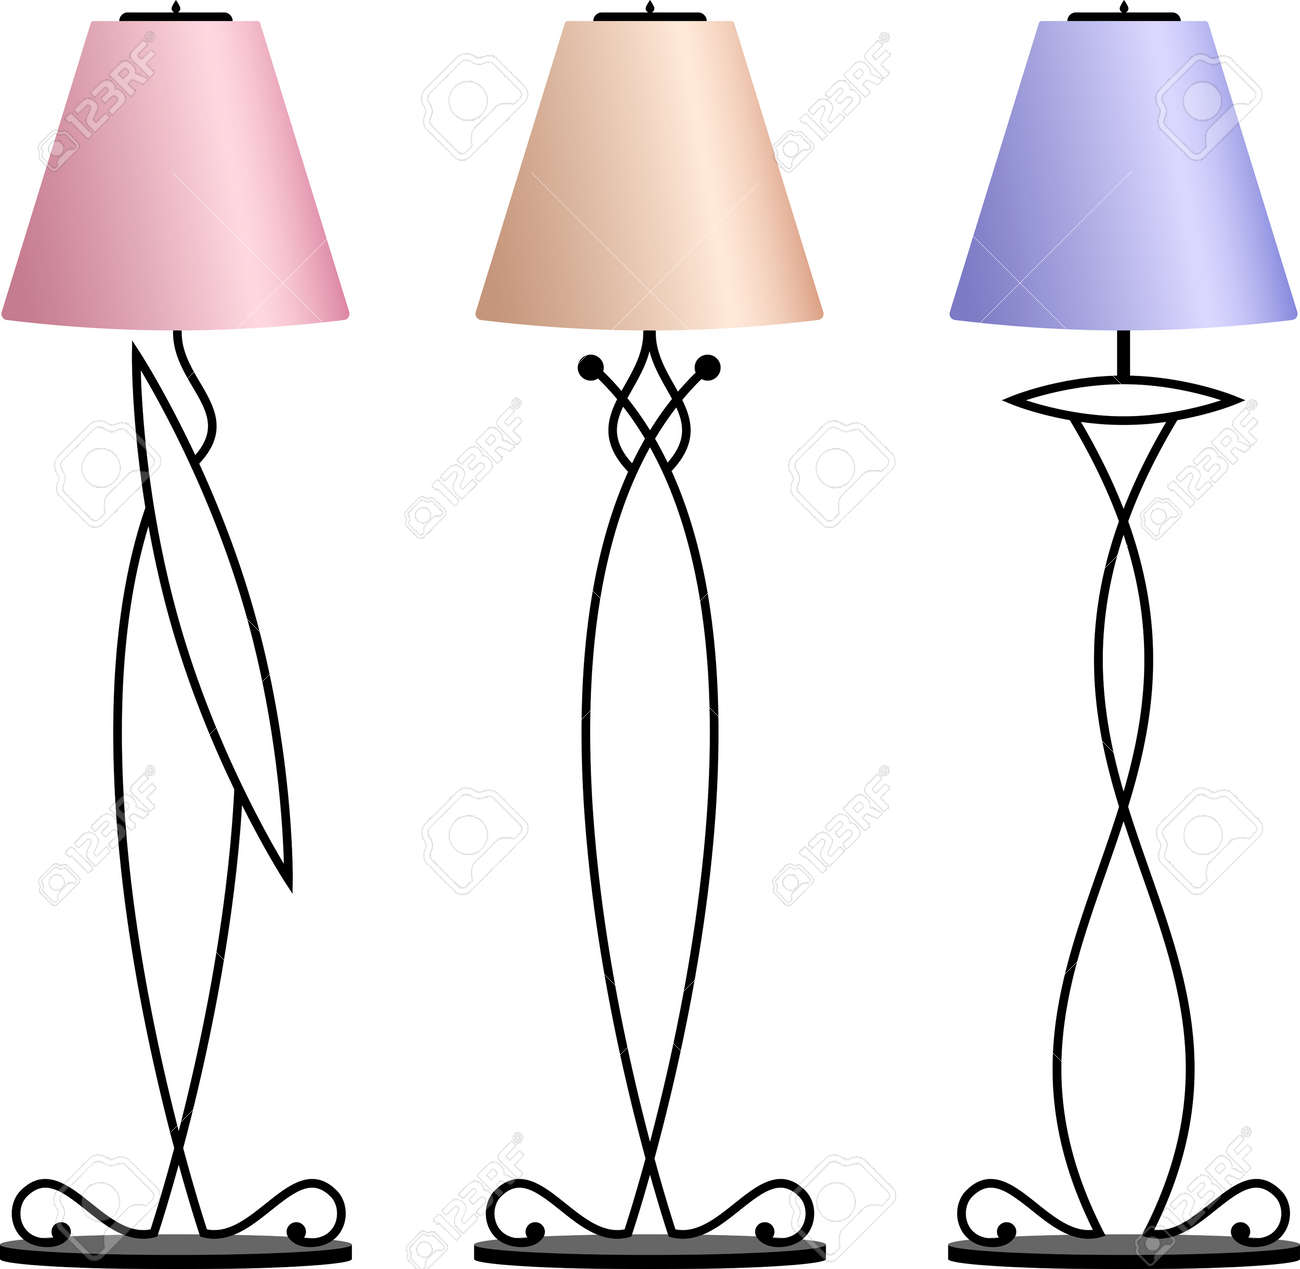 Wrought Iron Table Floor Lamp Vector Illustration Royalty Free Cliparts Vectors And Stock Illustration Image 58913994